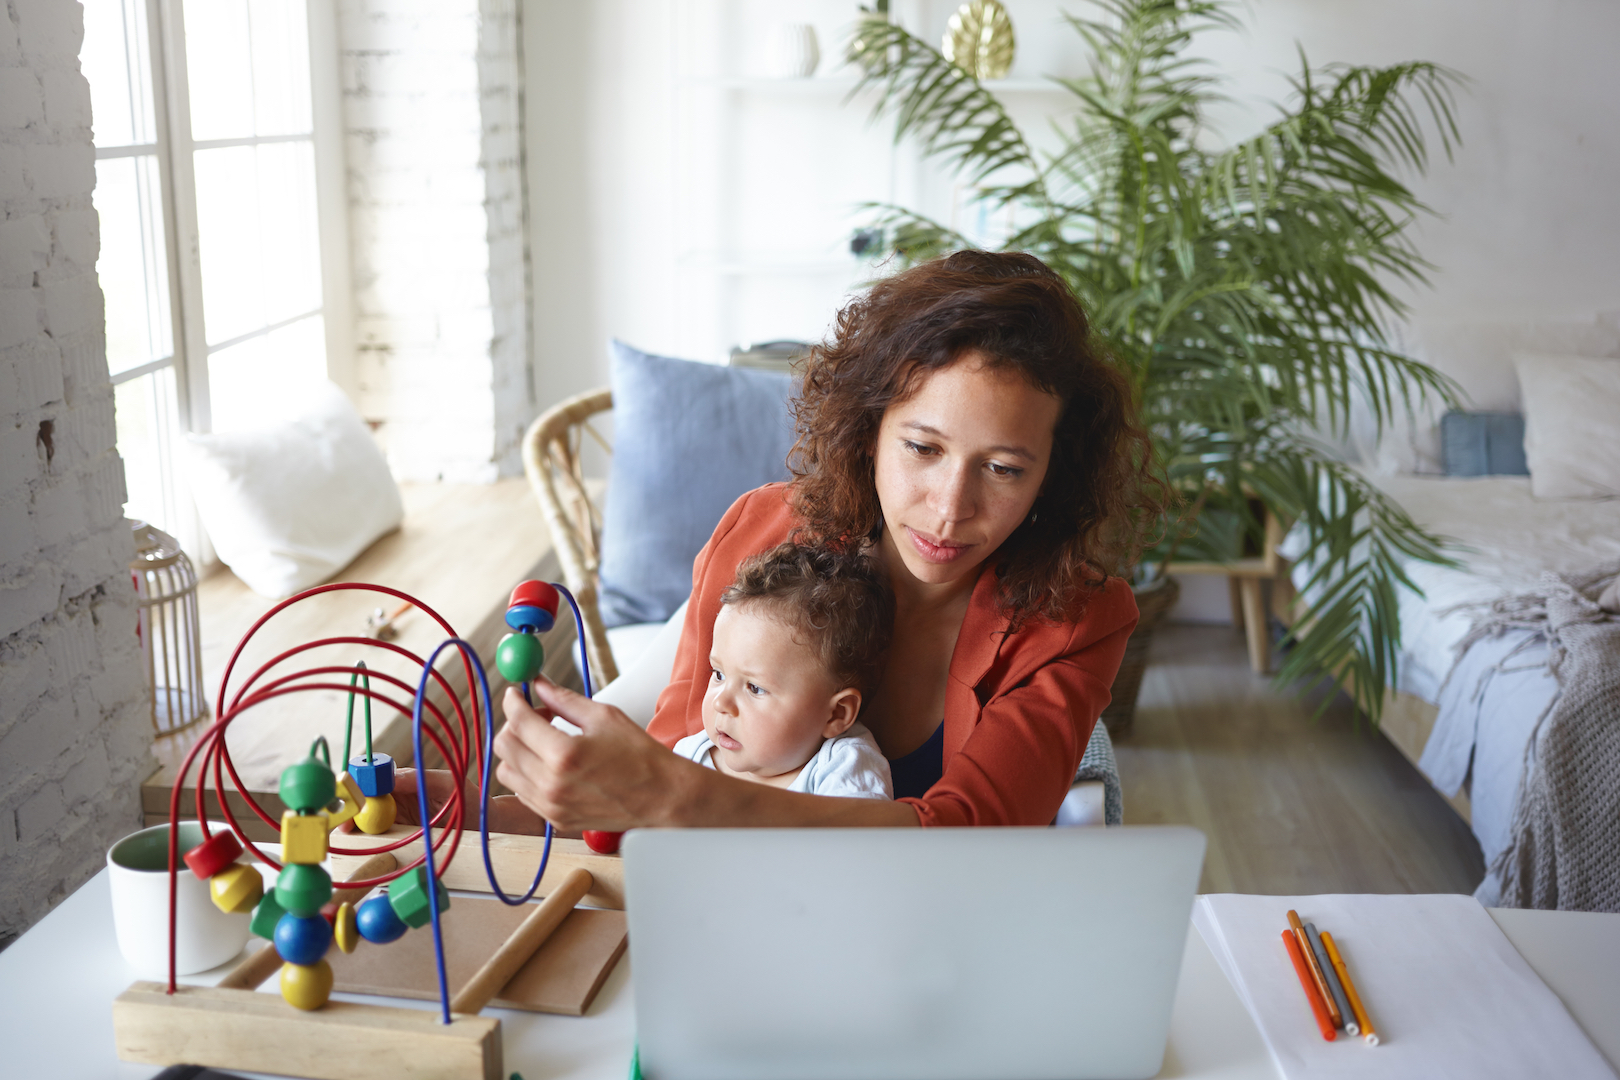 6 Tips to Make Returning to Work After Maternity Leave Easier